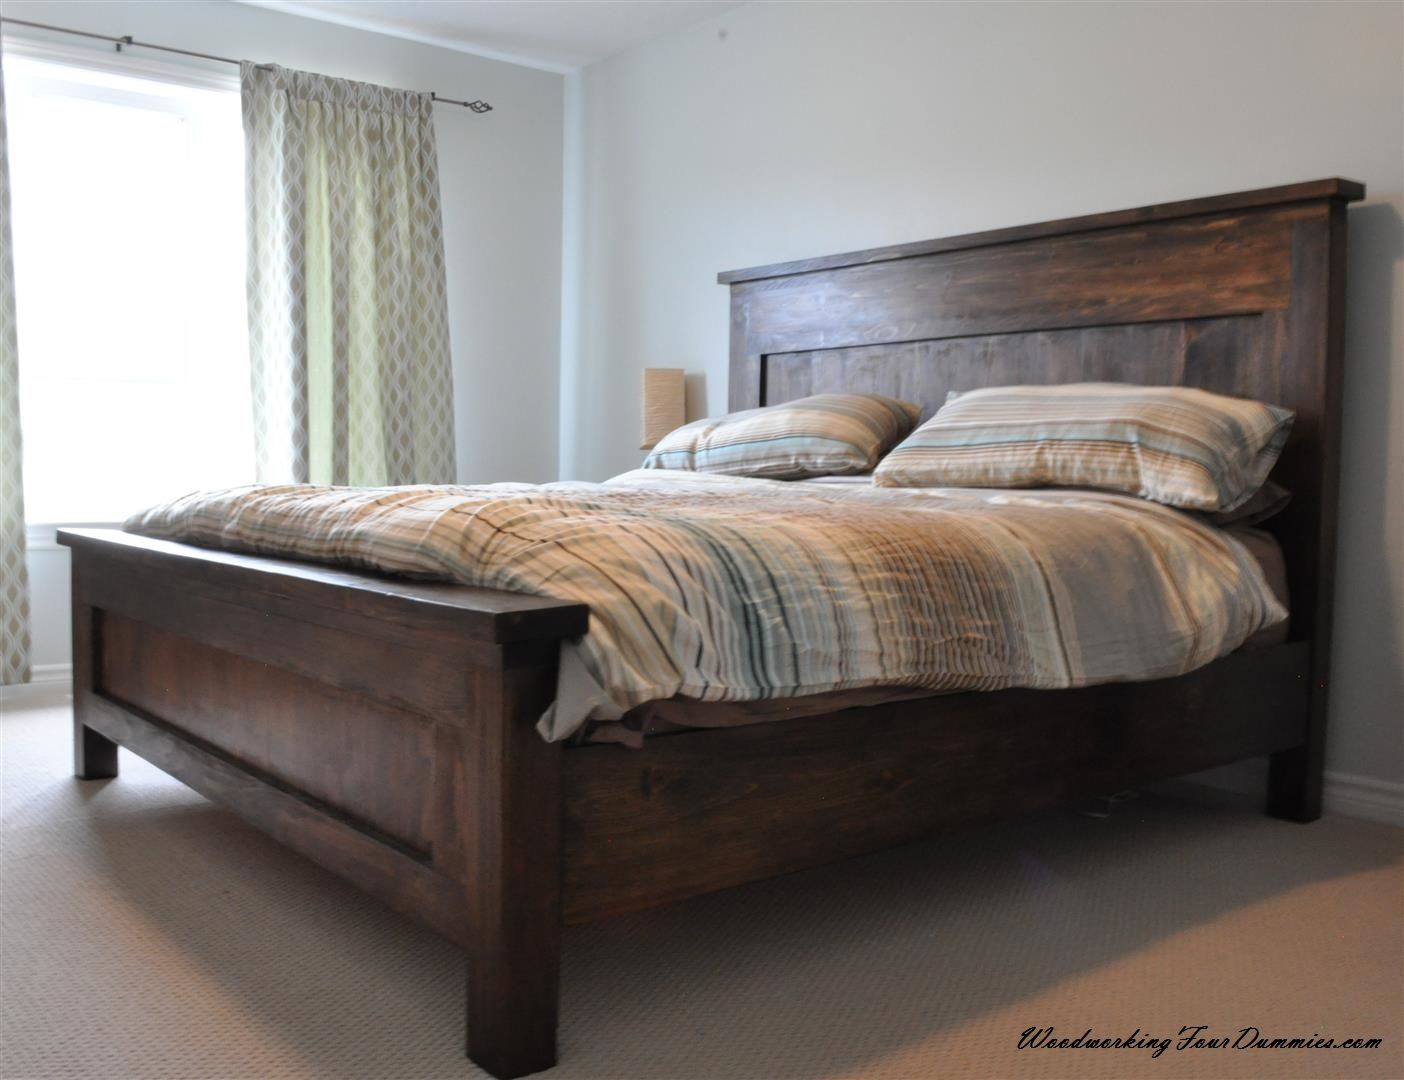 King Farmhouse Bed Do It Yourself Home Projects From Ana White Bed Frame Ideas Pinterest